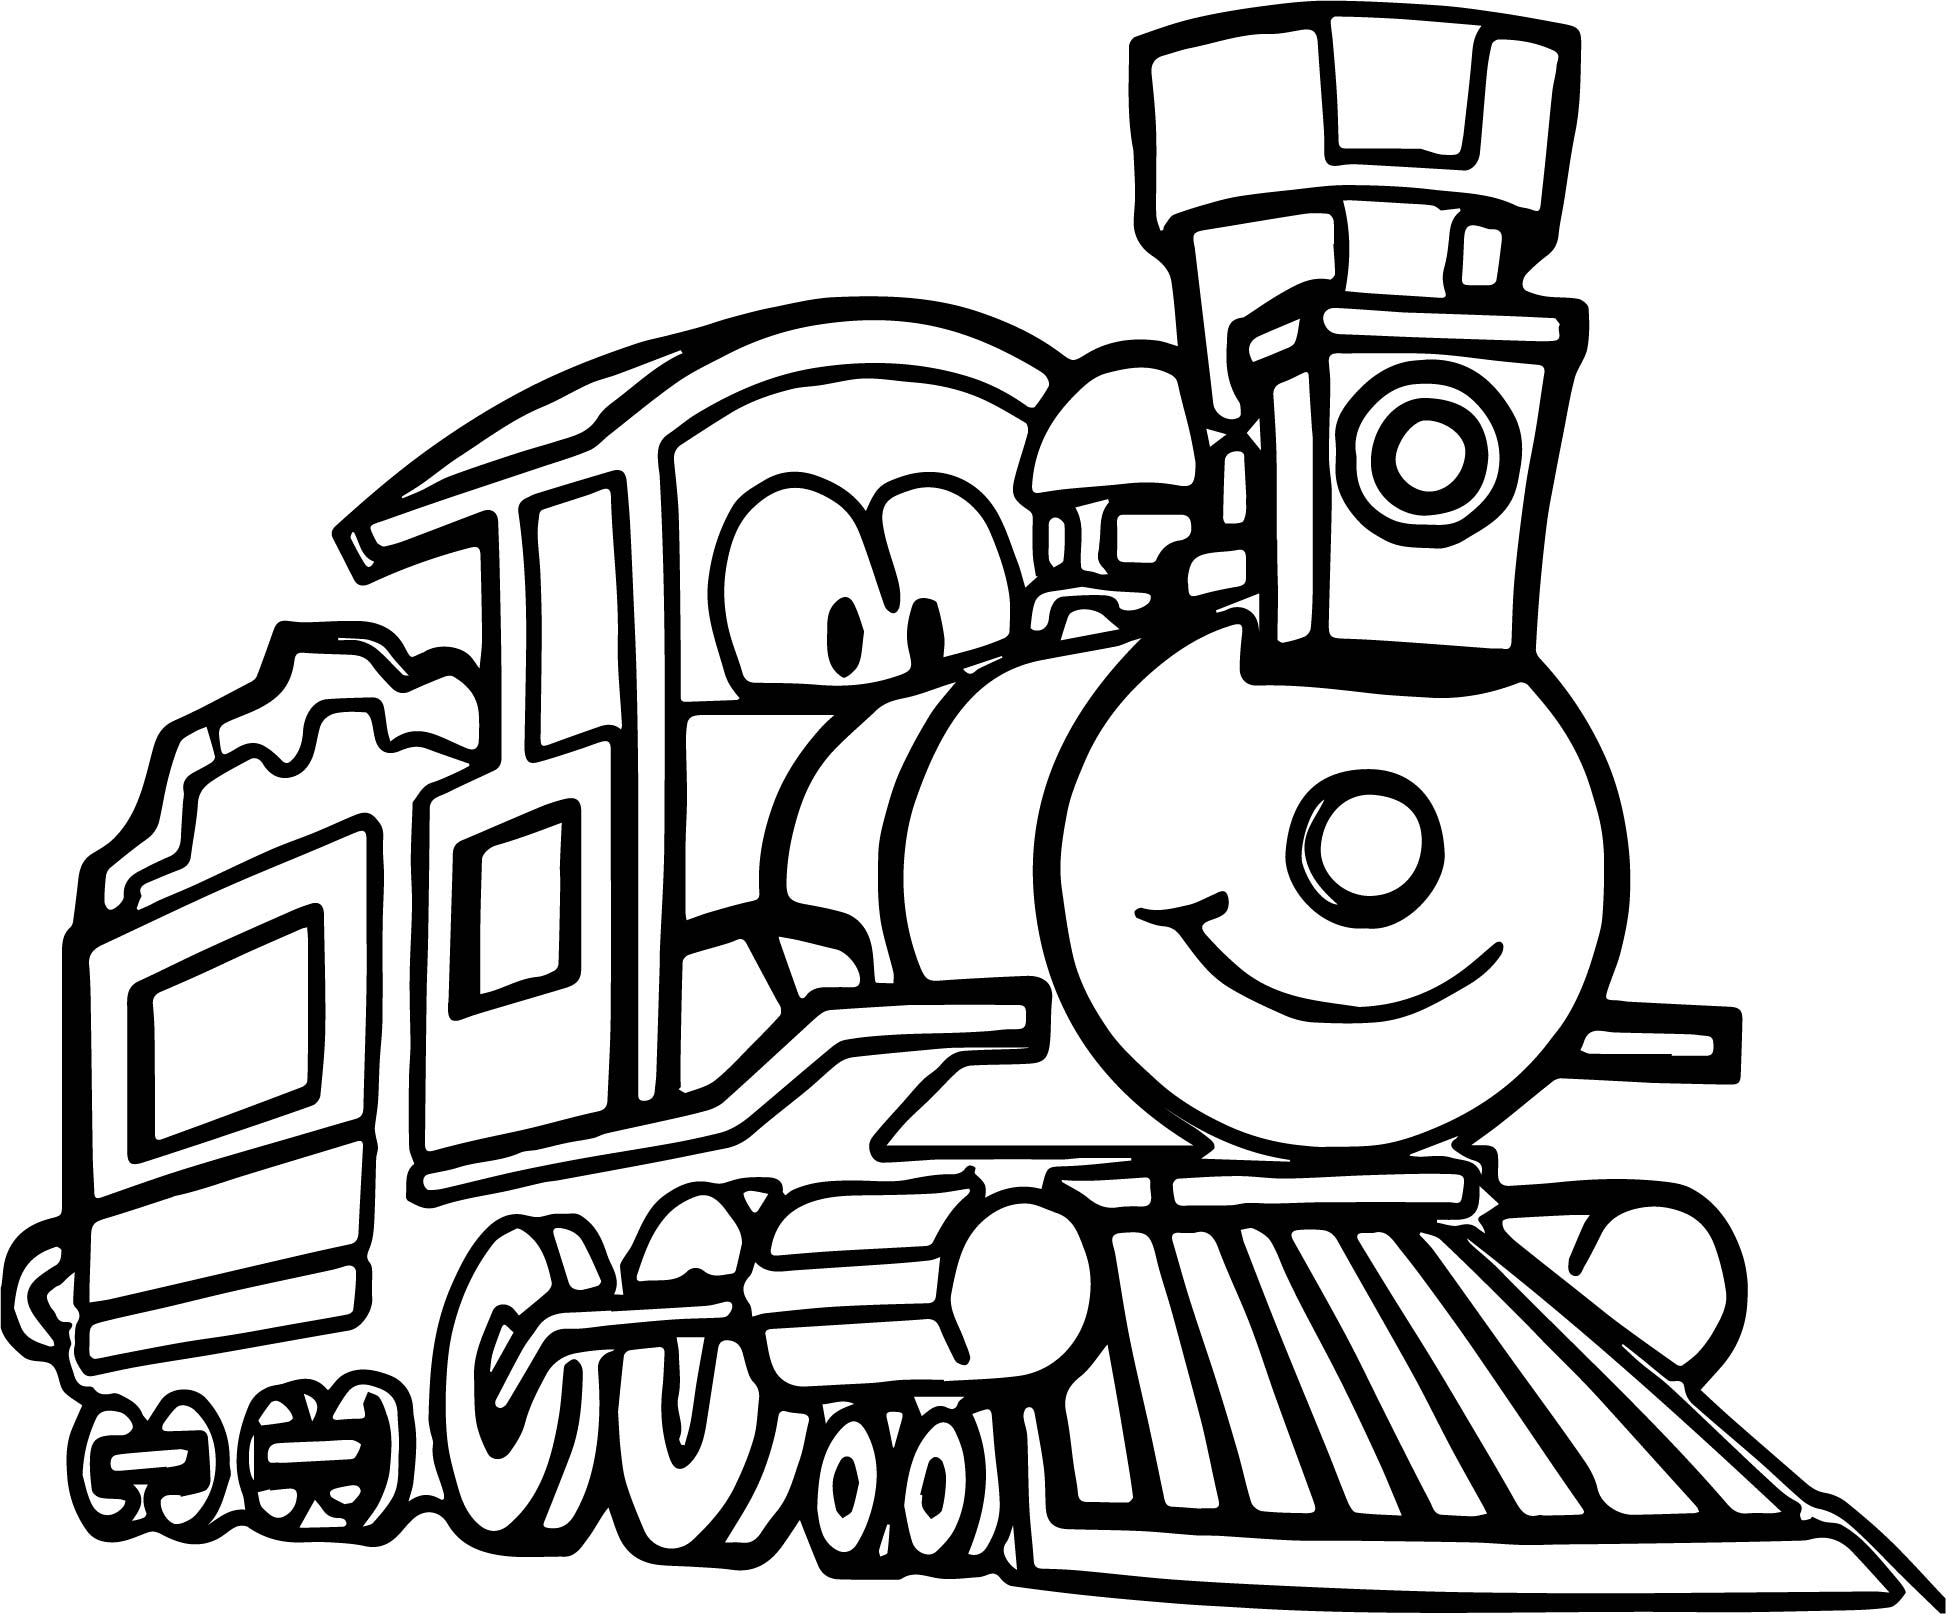 coloring train pages thomas the tank engine train coloring page tsgoscom pages train coloring